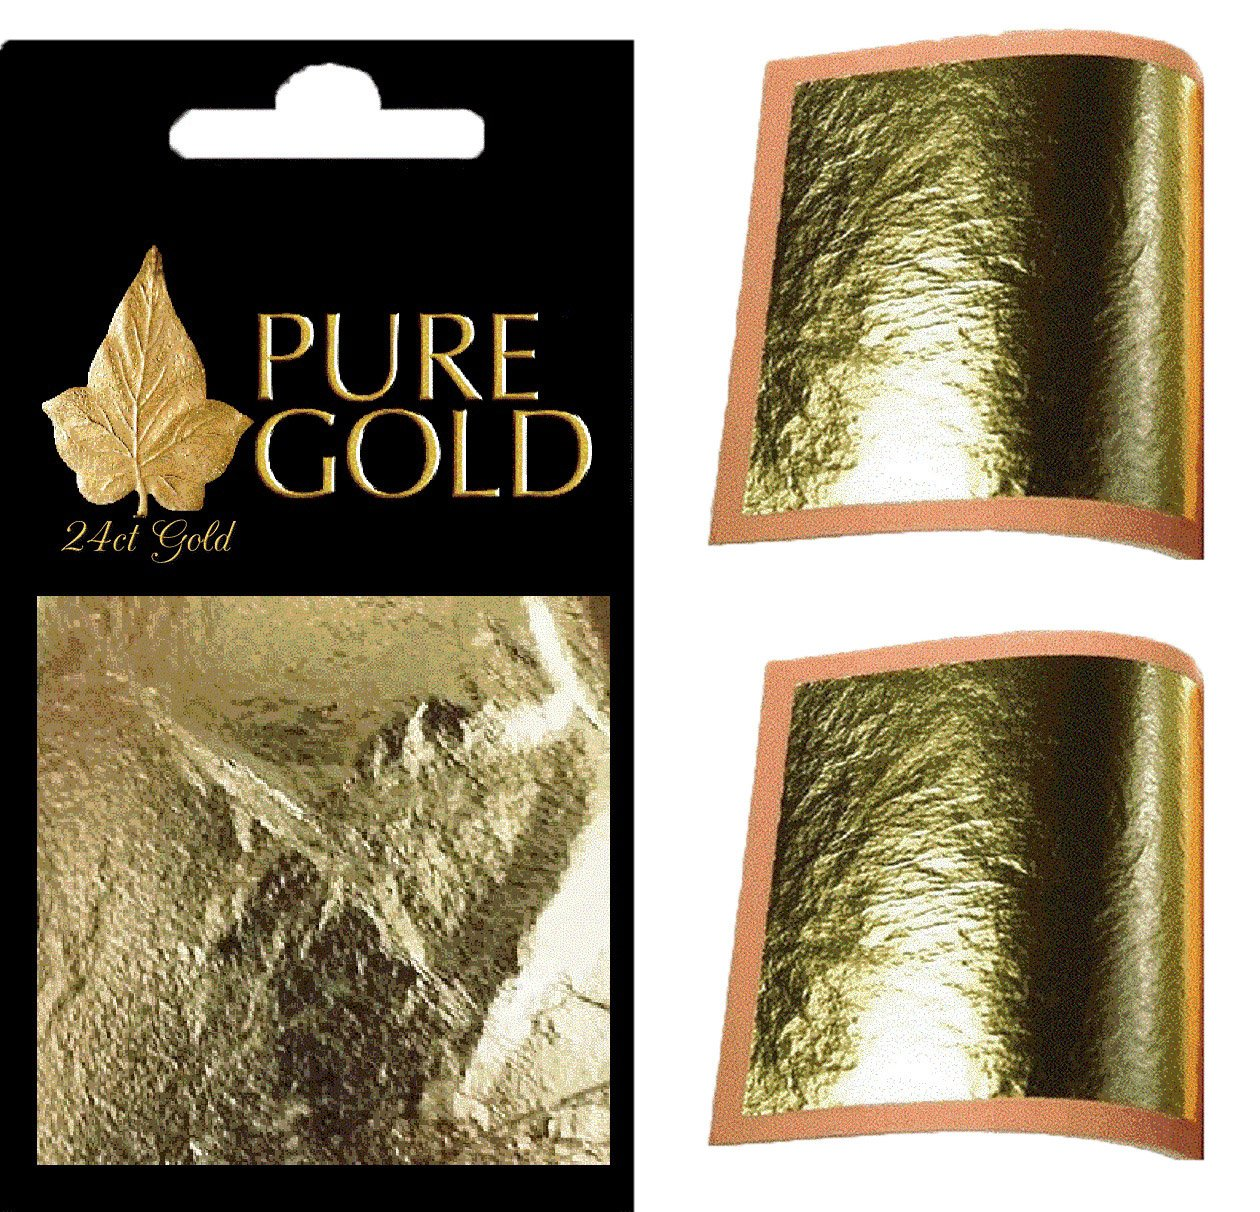 24ct Gold Leaf 100% Genuine 10 sheets pure gold